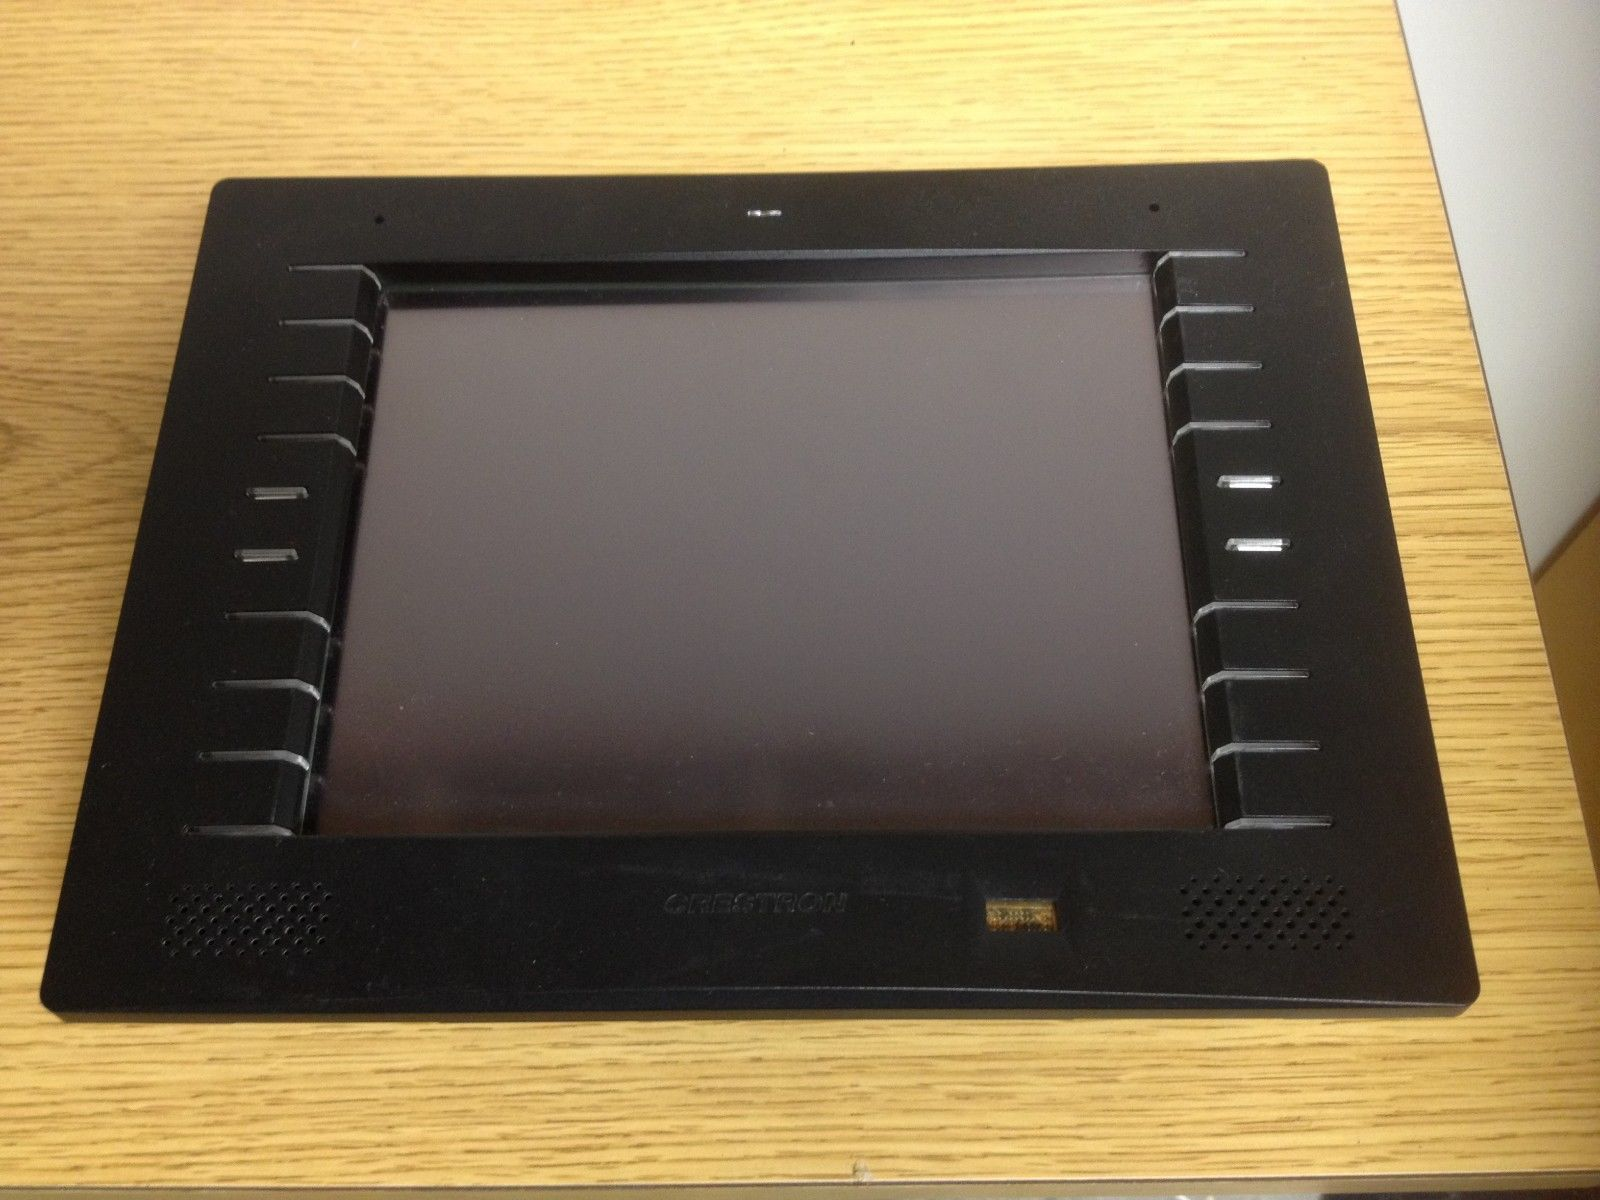 Crestron TPMC-8L Isys 8.4 Wall Mount Touch PanelCrestron